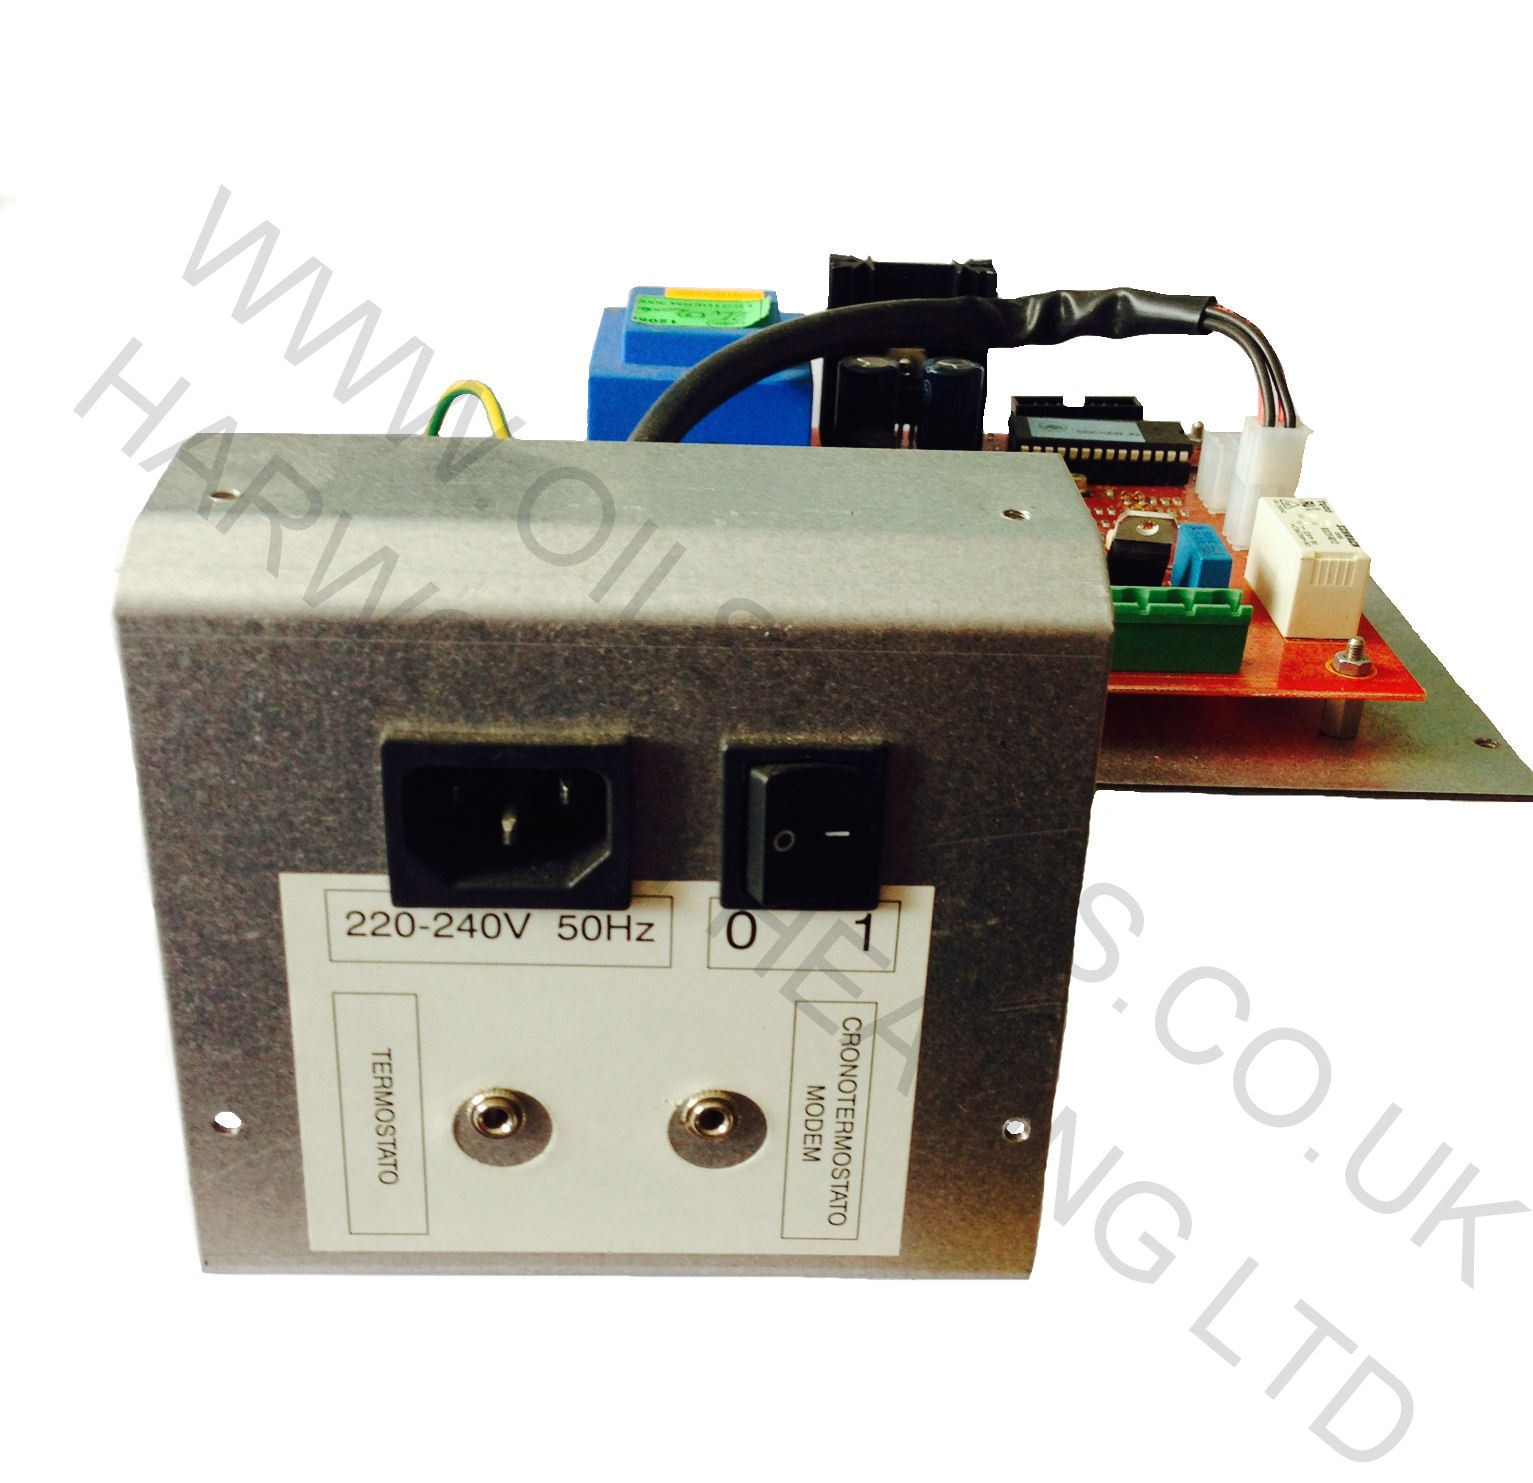 Thermorossi pcb ecotherm 3000 harworth heating for Thermorossi ecotherm 3000